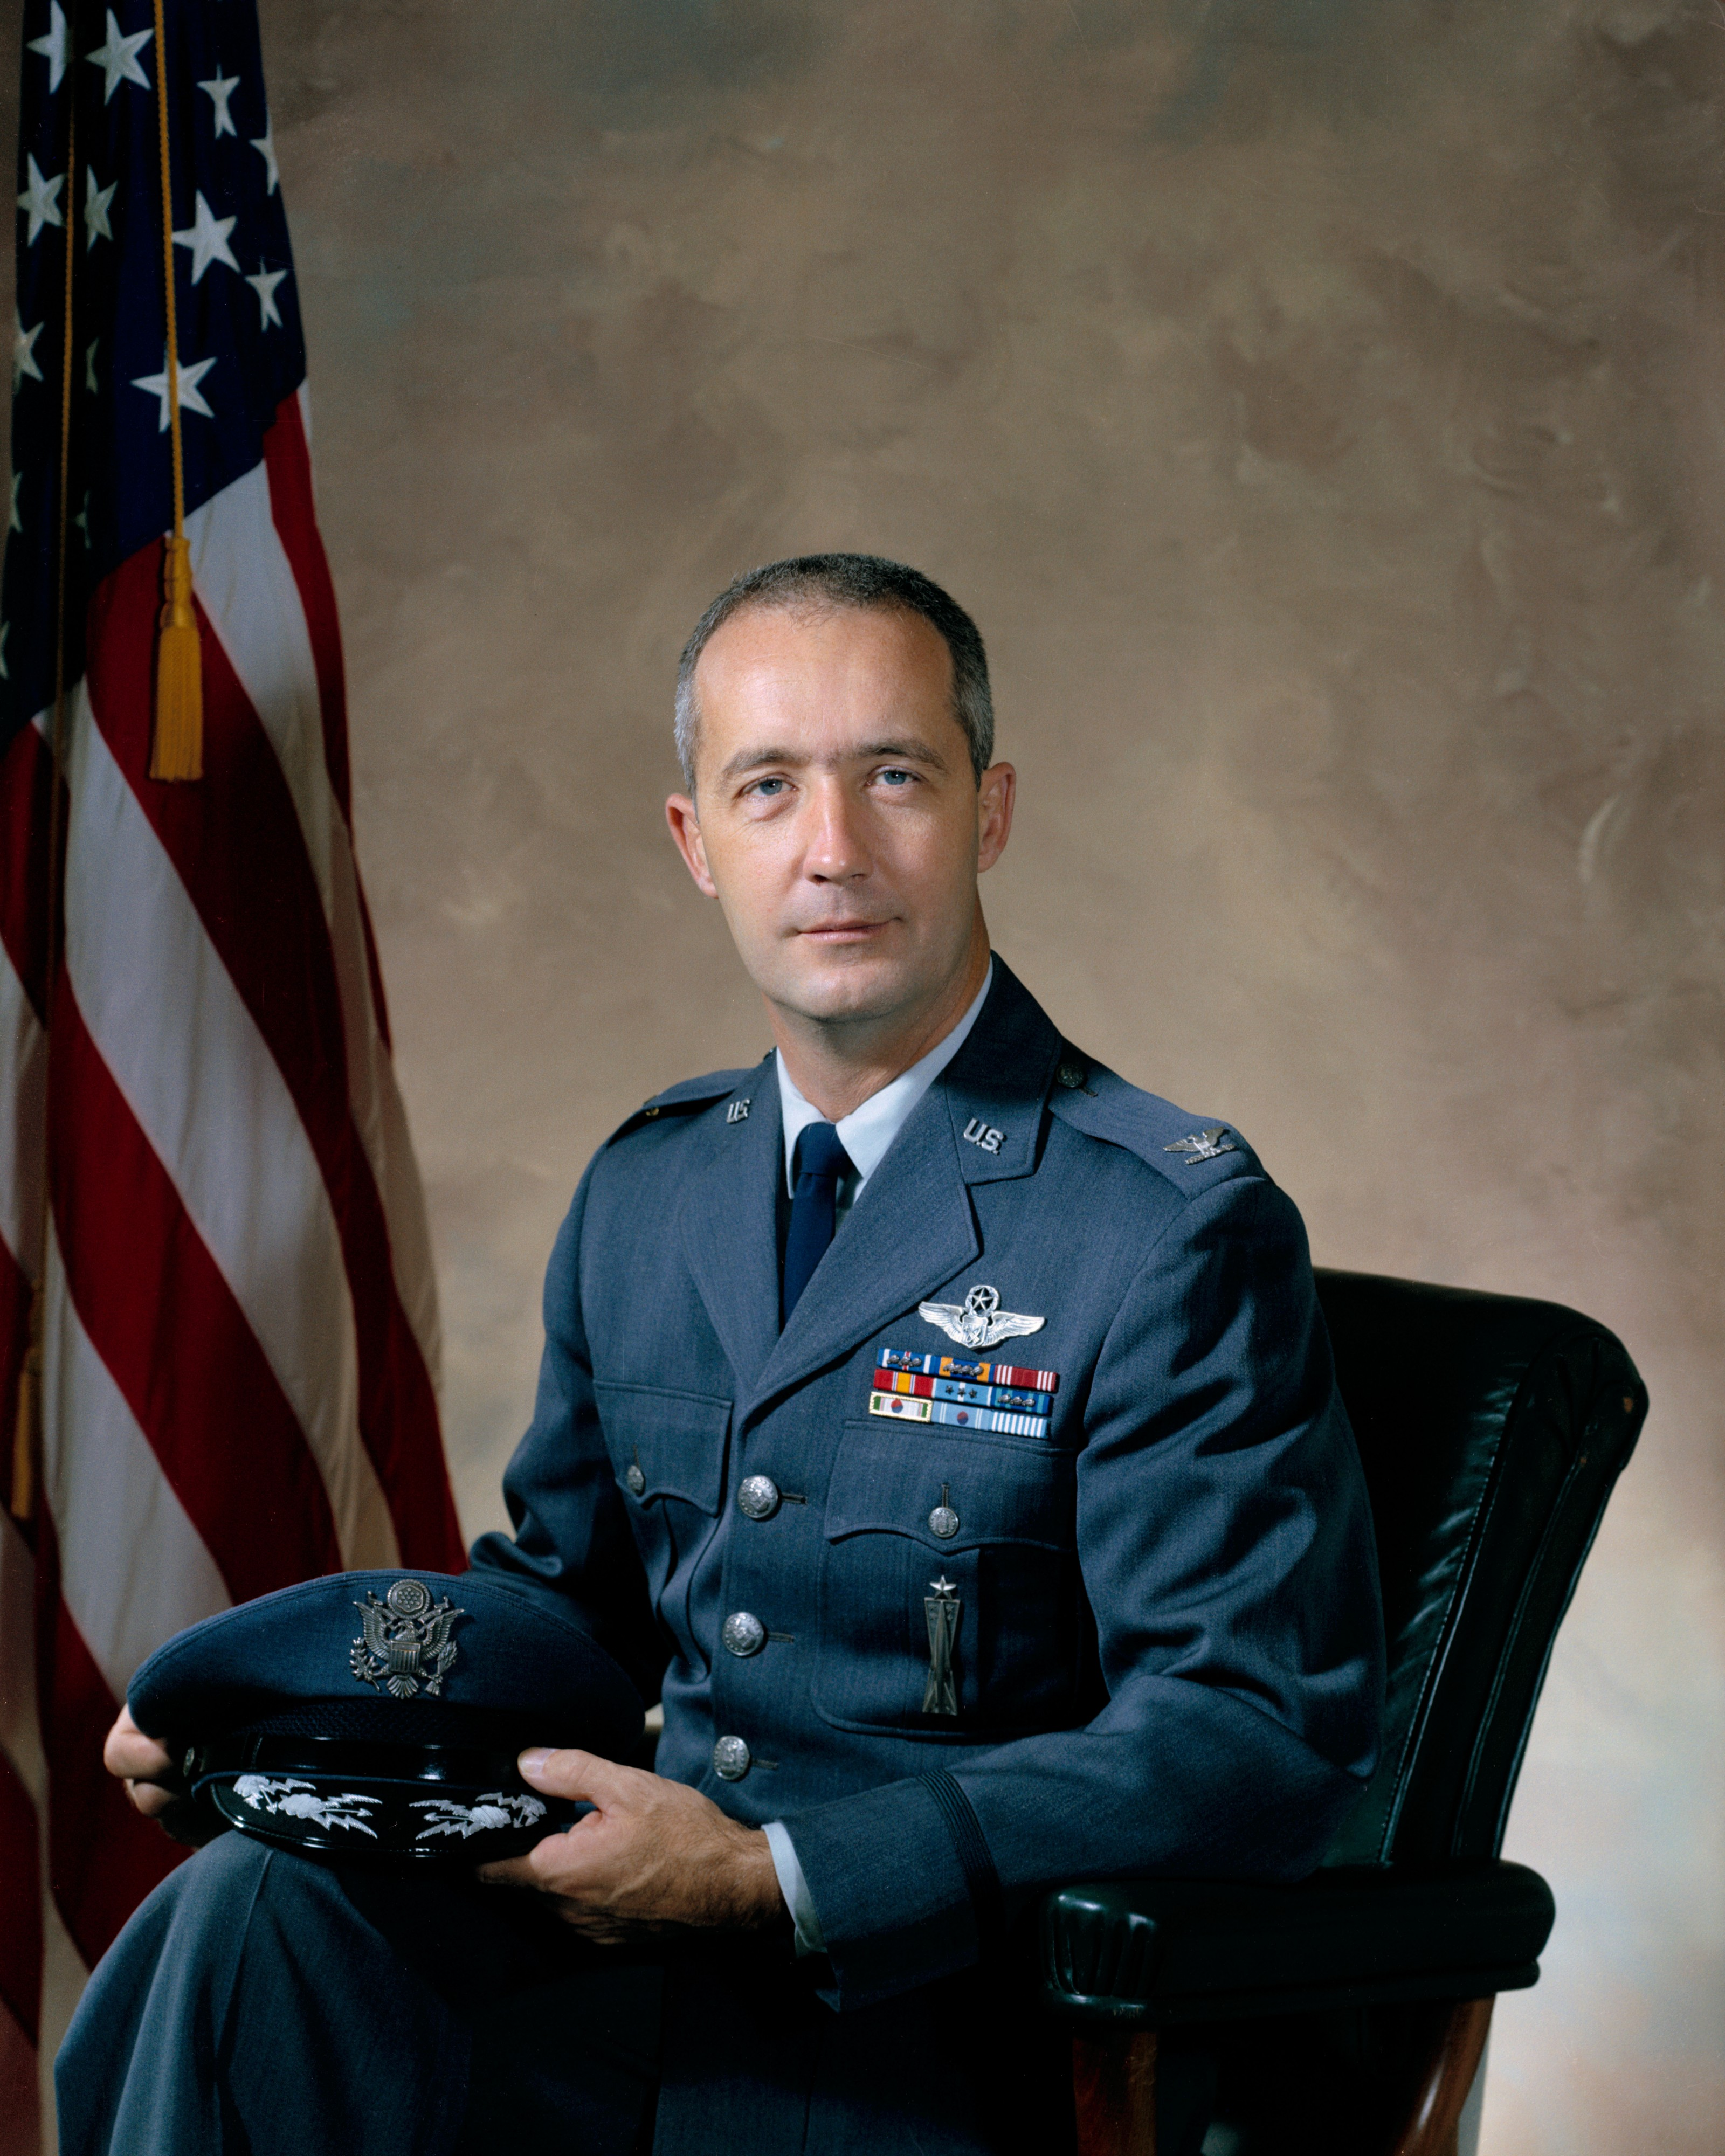 Astronaut James A. McDivitt in Air Force uniform